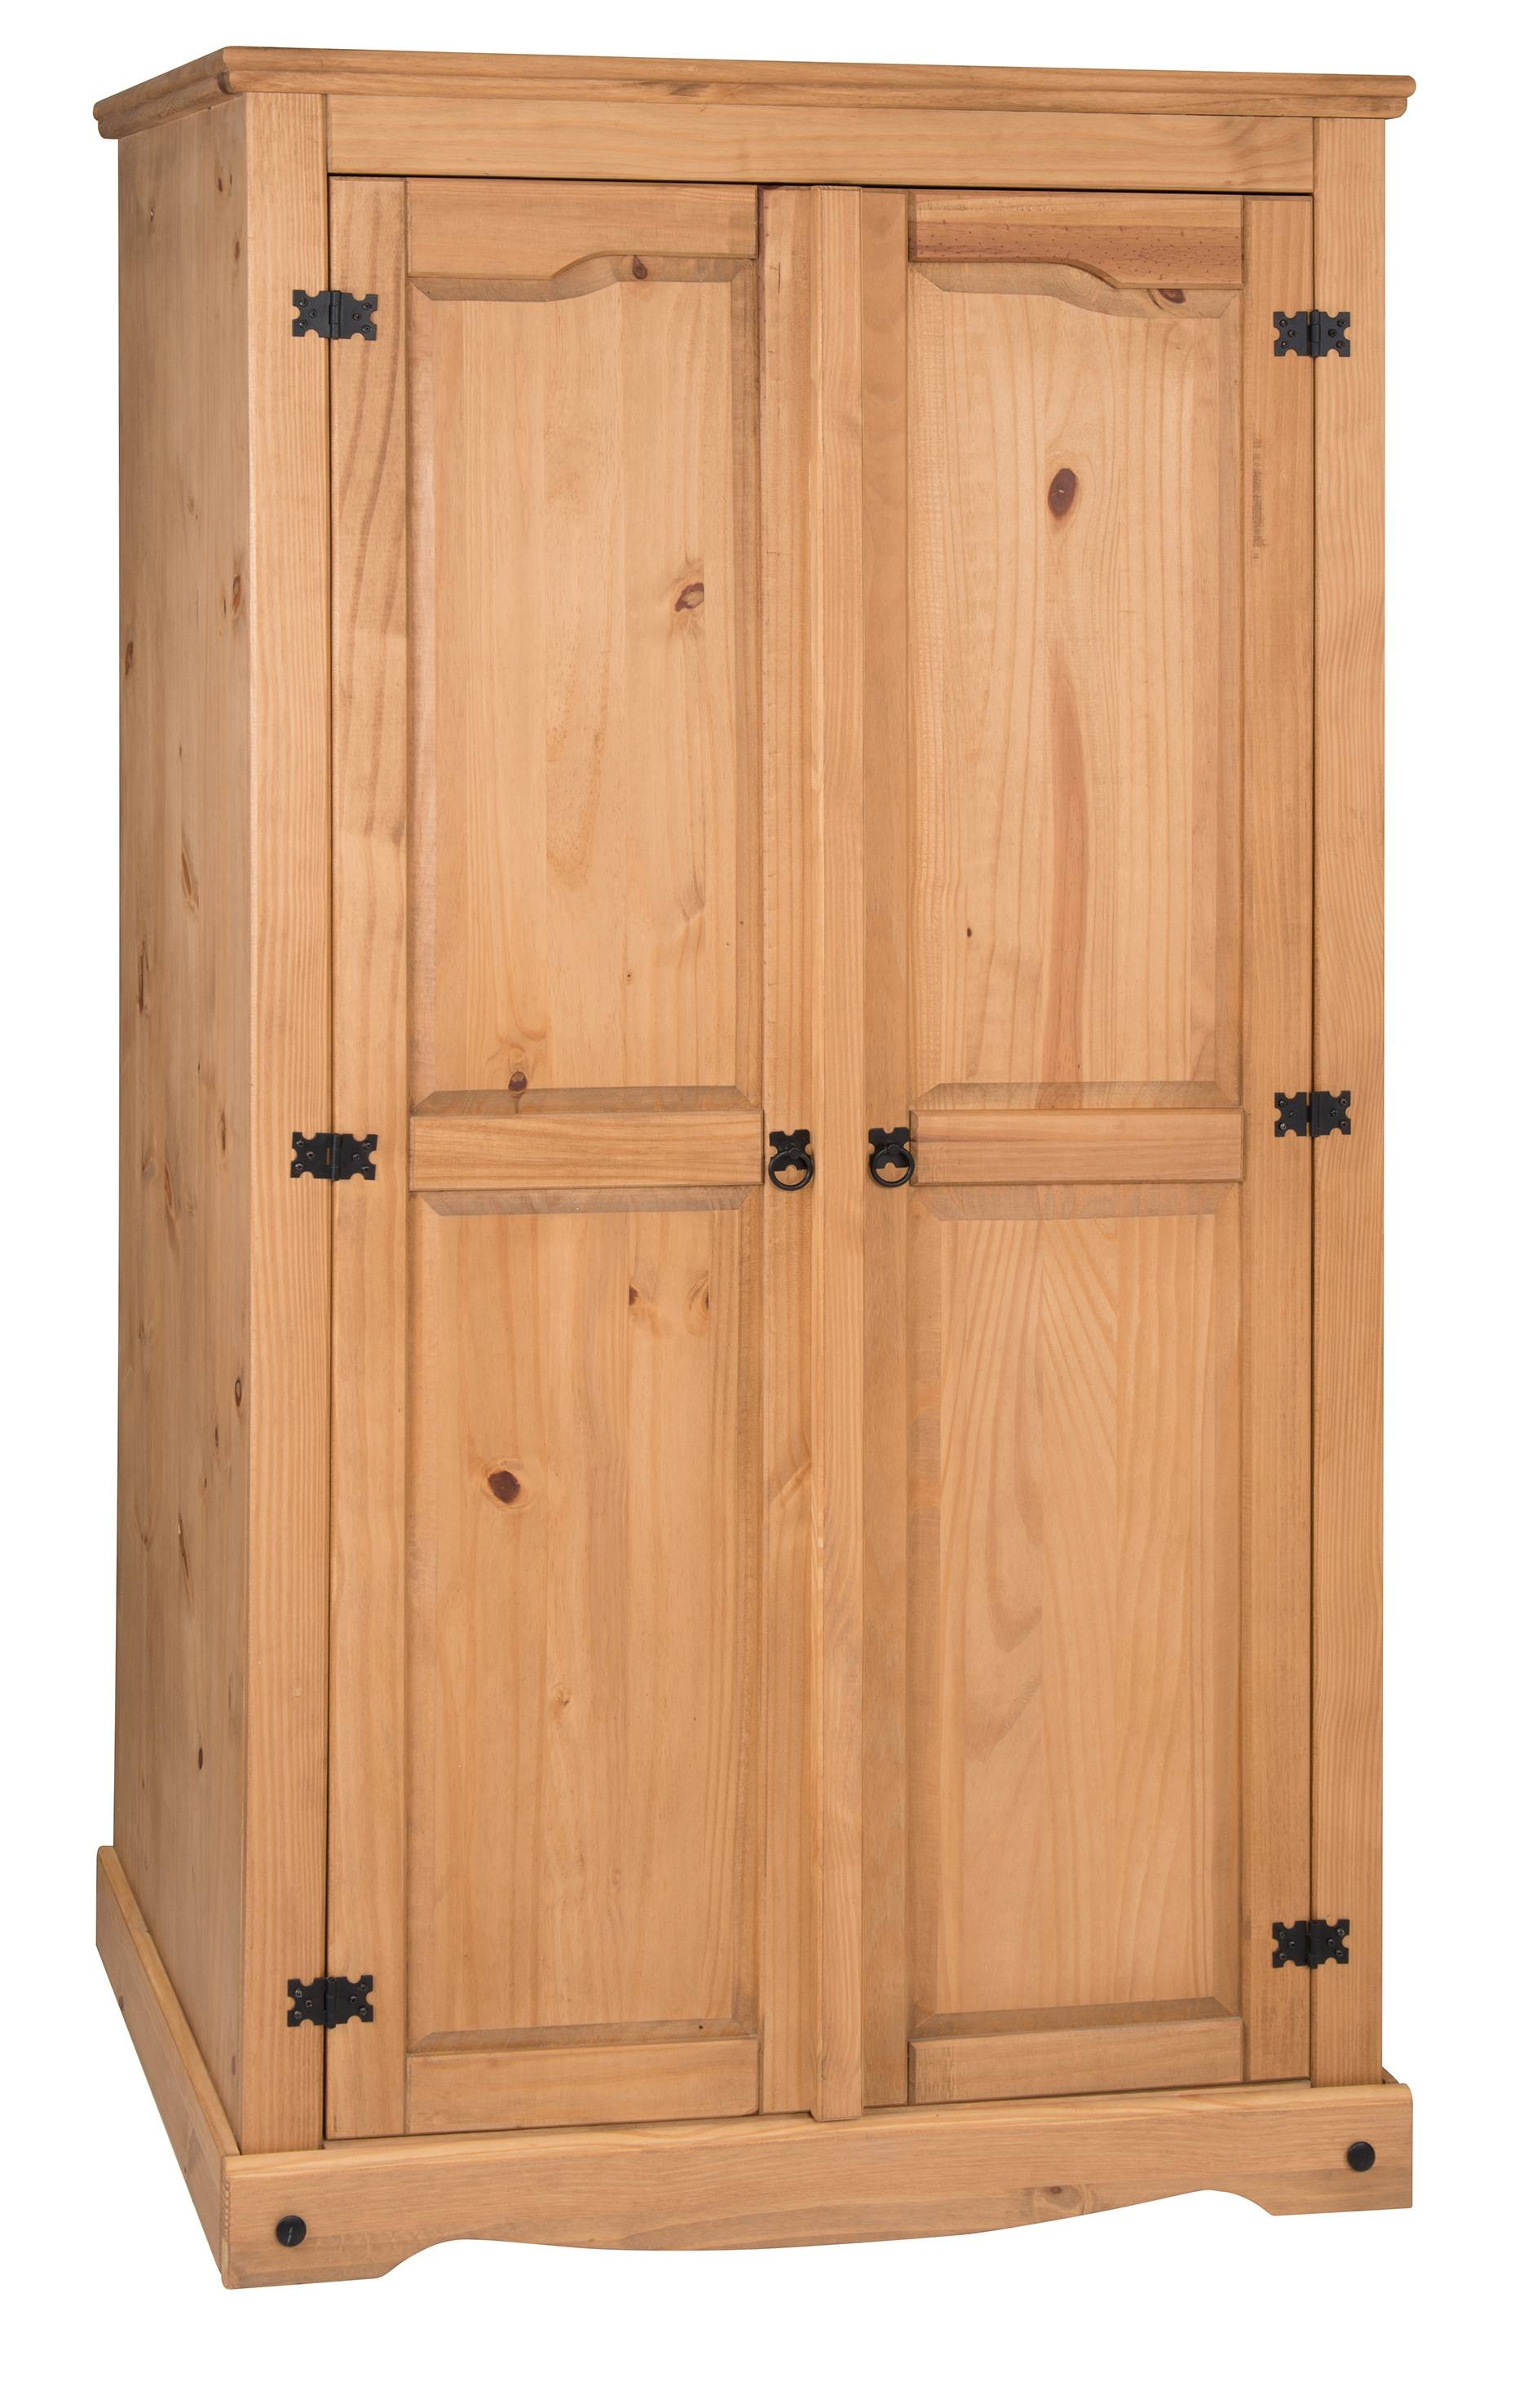 Corona 3 Door Flat Top Wardrobe with regard to Corona Wardrobes With 3 Doors (Image 7 of 15)